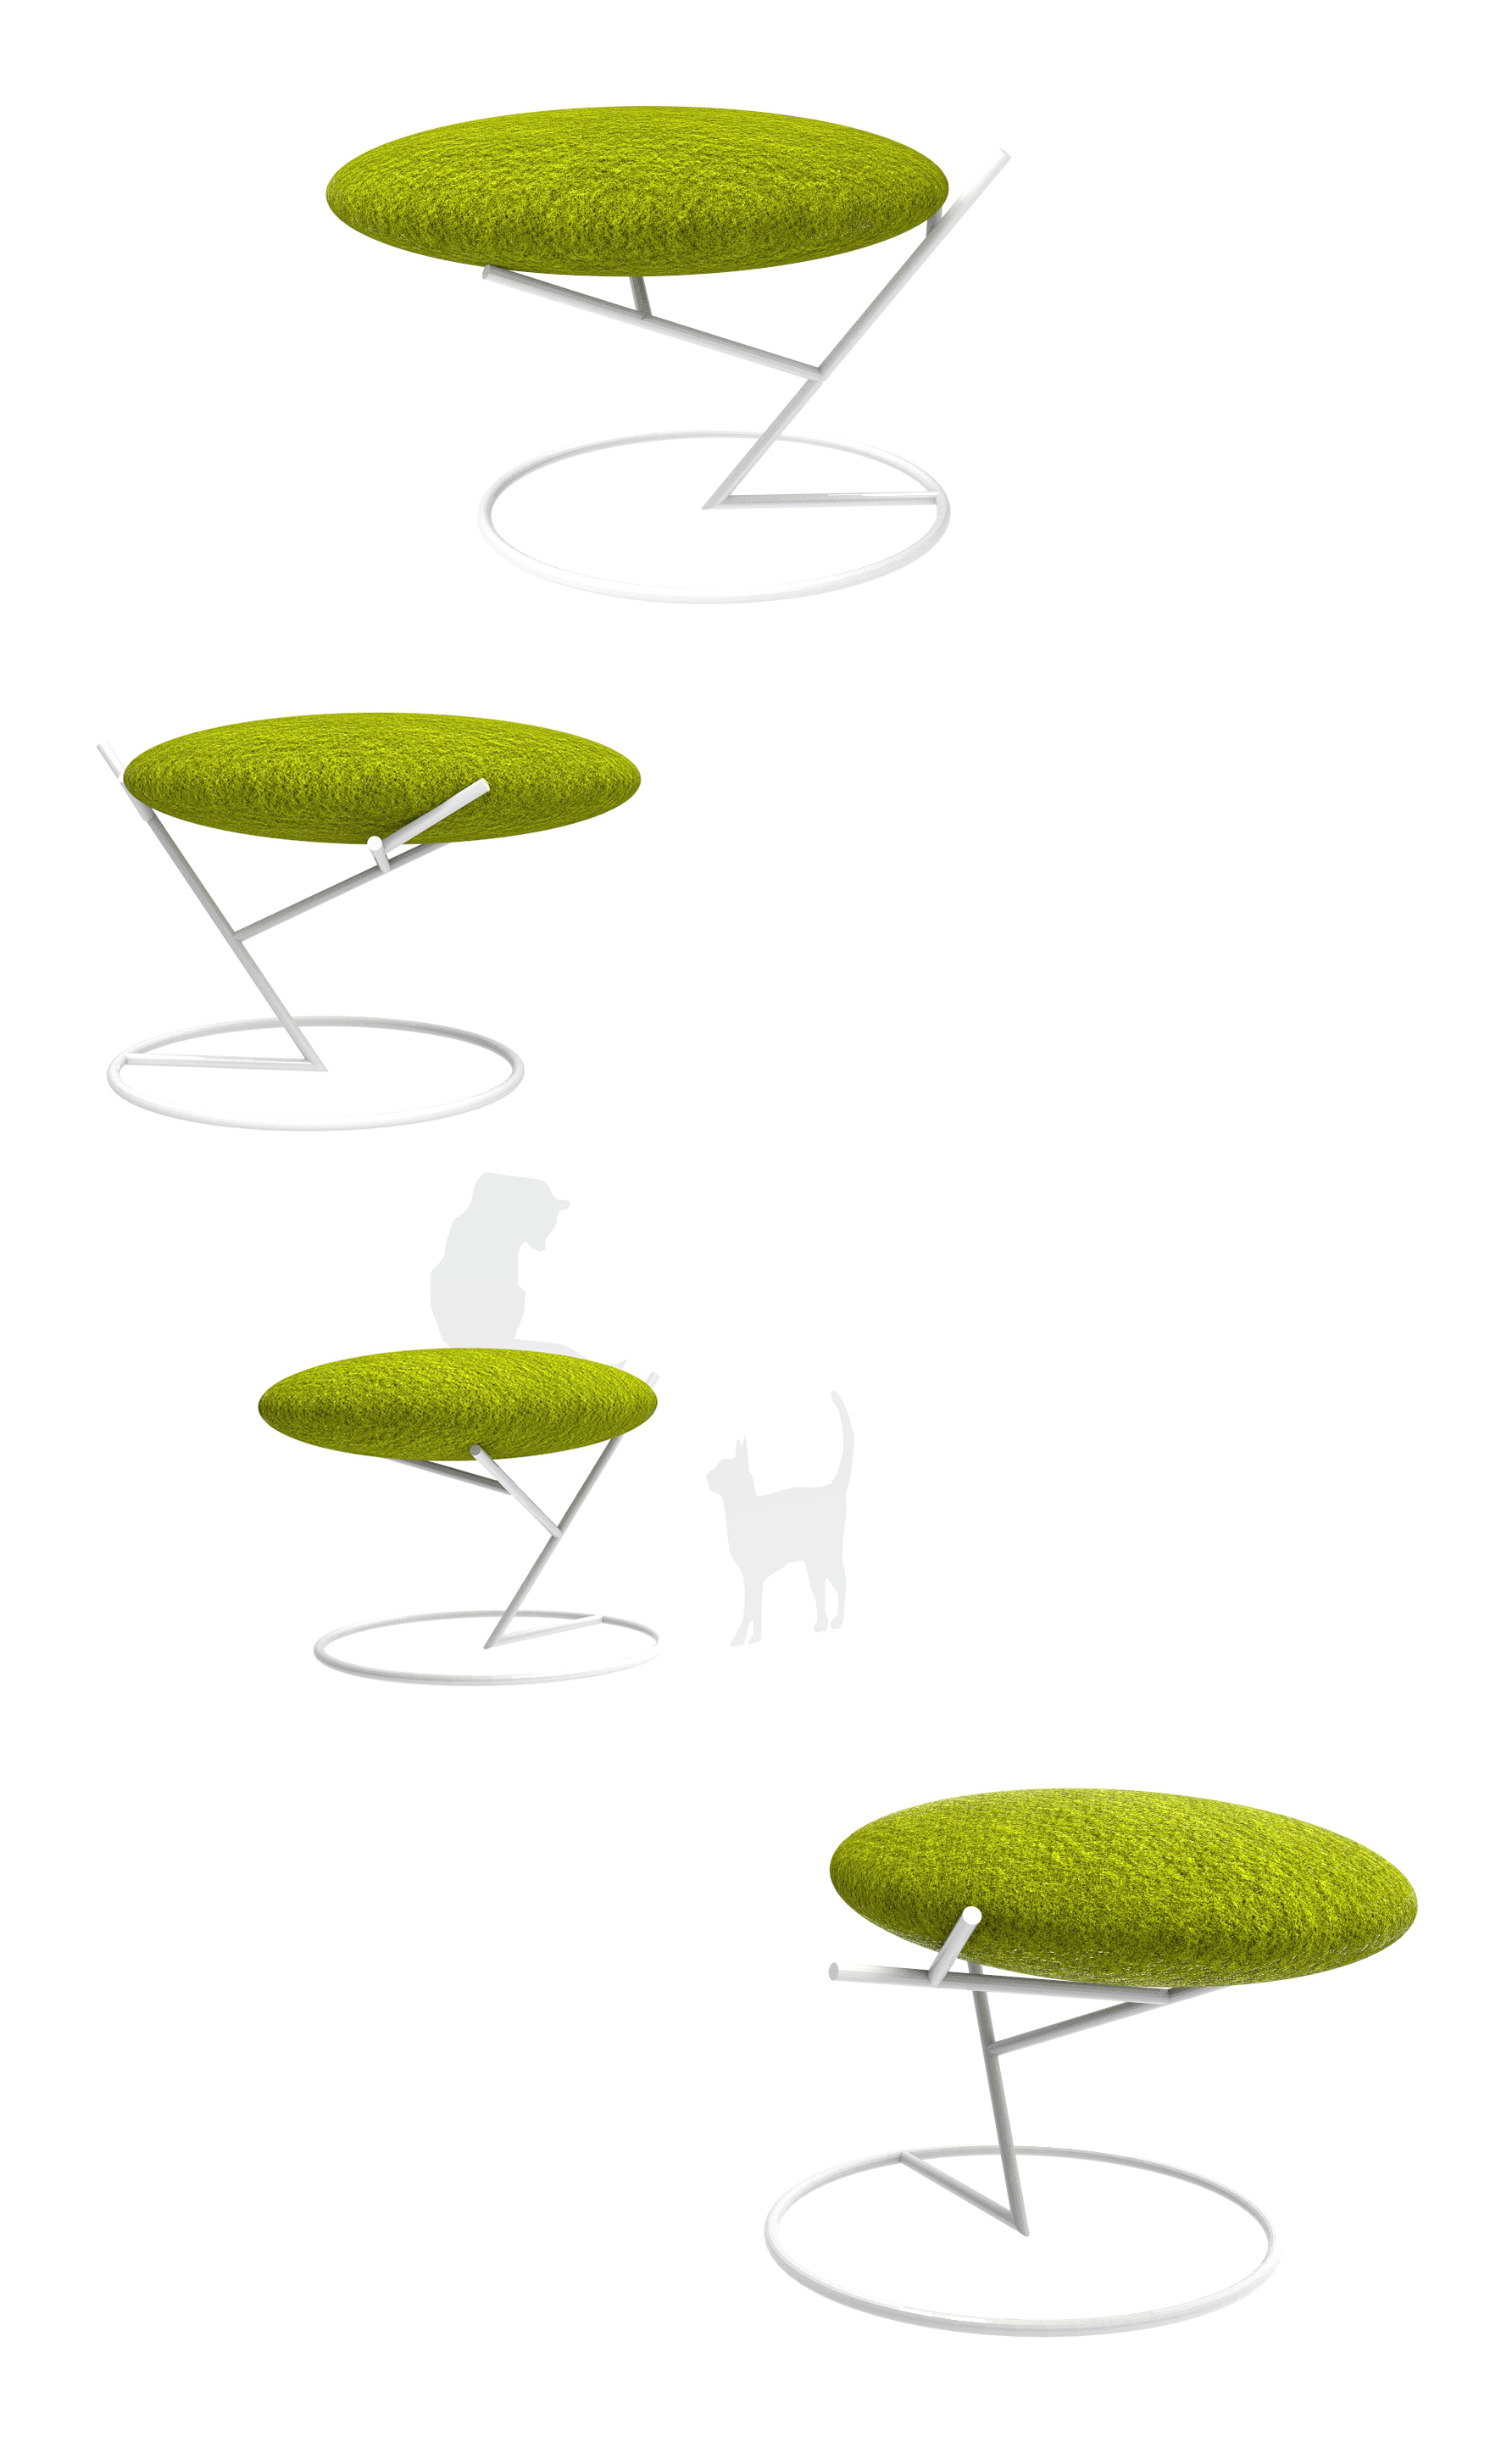 bonsai-seat-design-for-cat-pawlowska-design-p